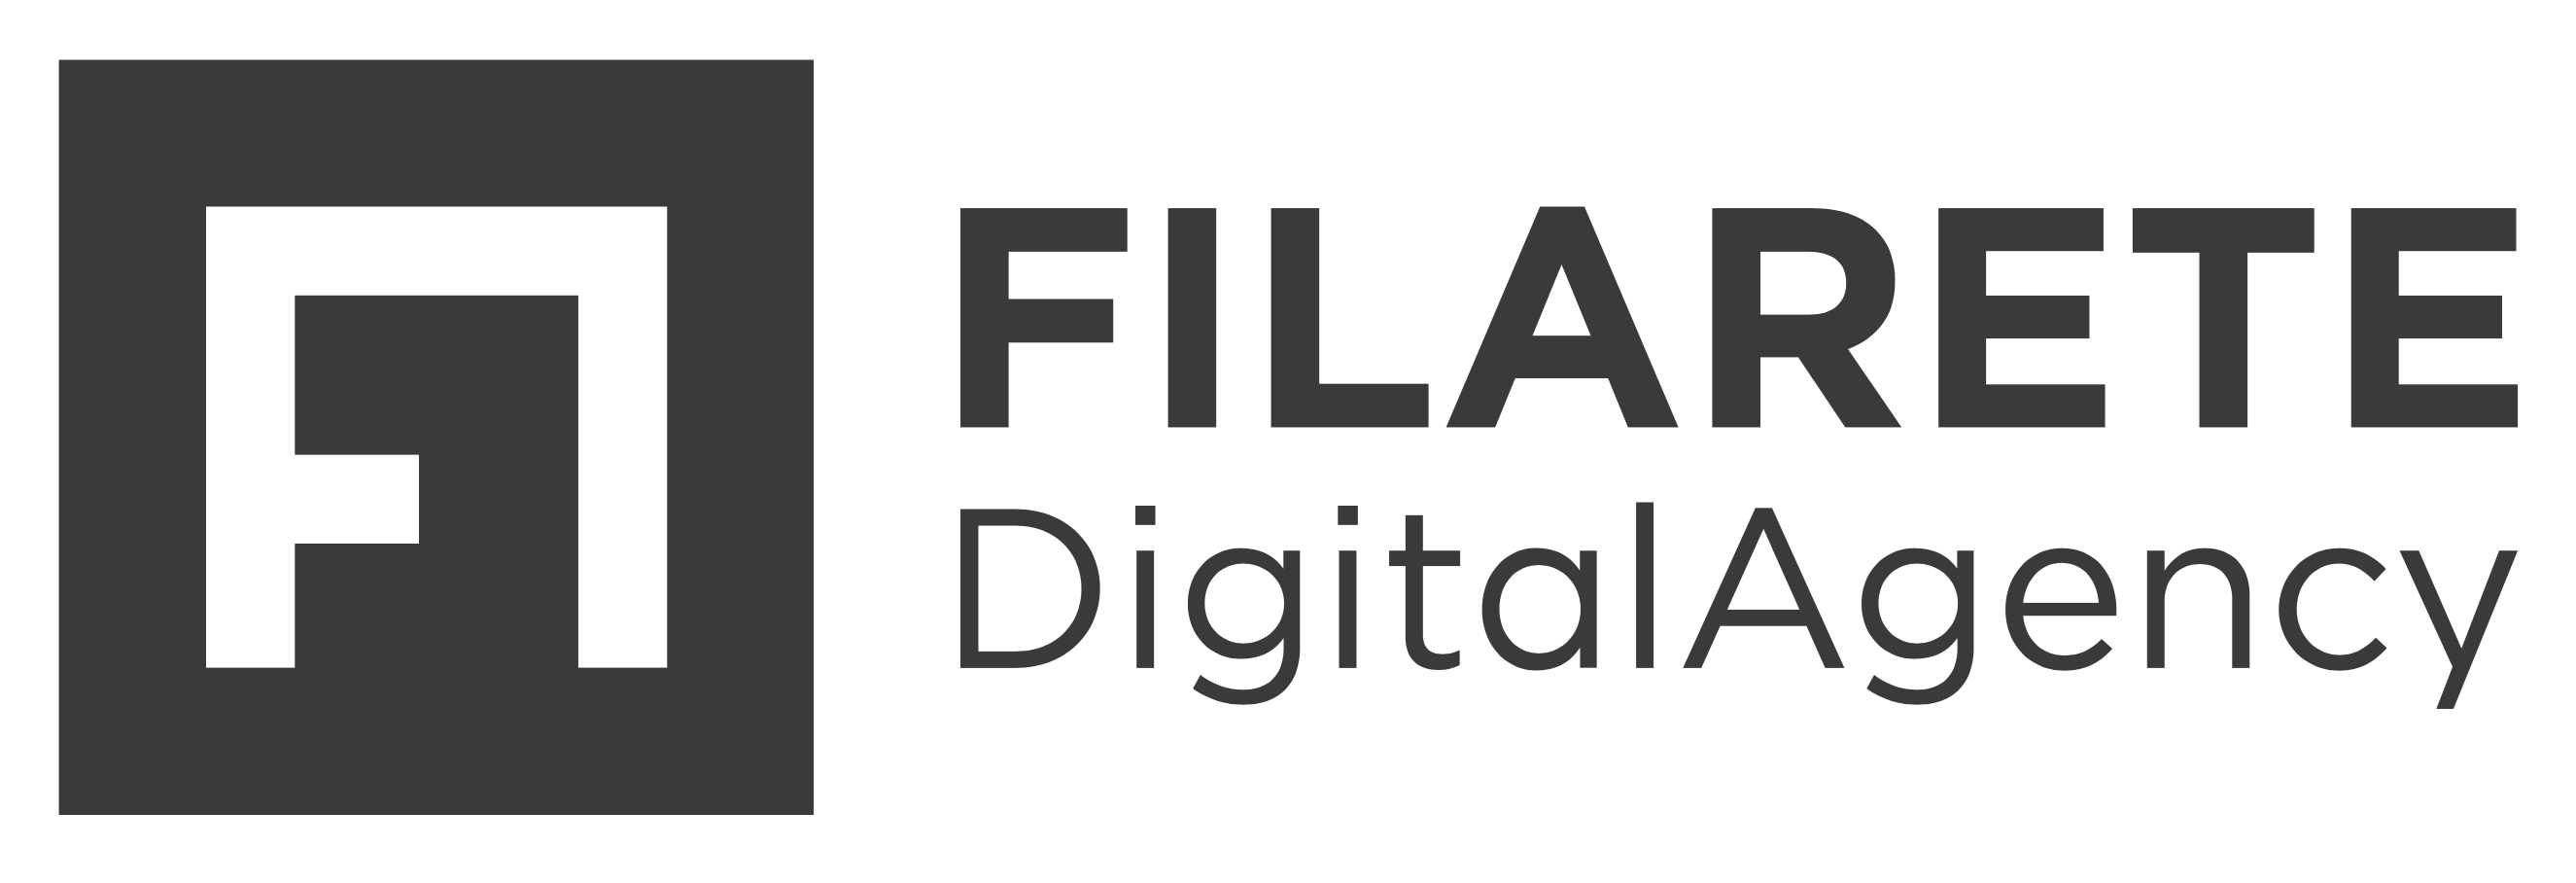 Filarete Digital